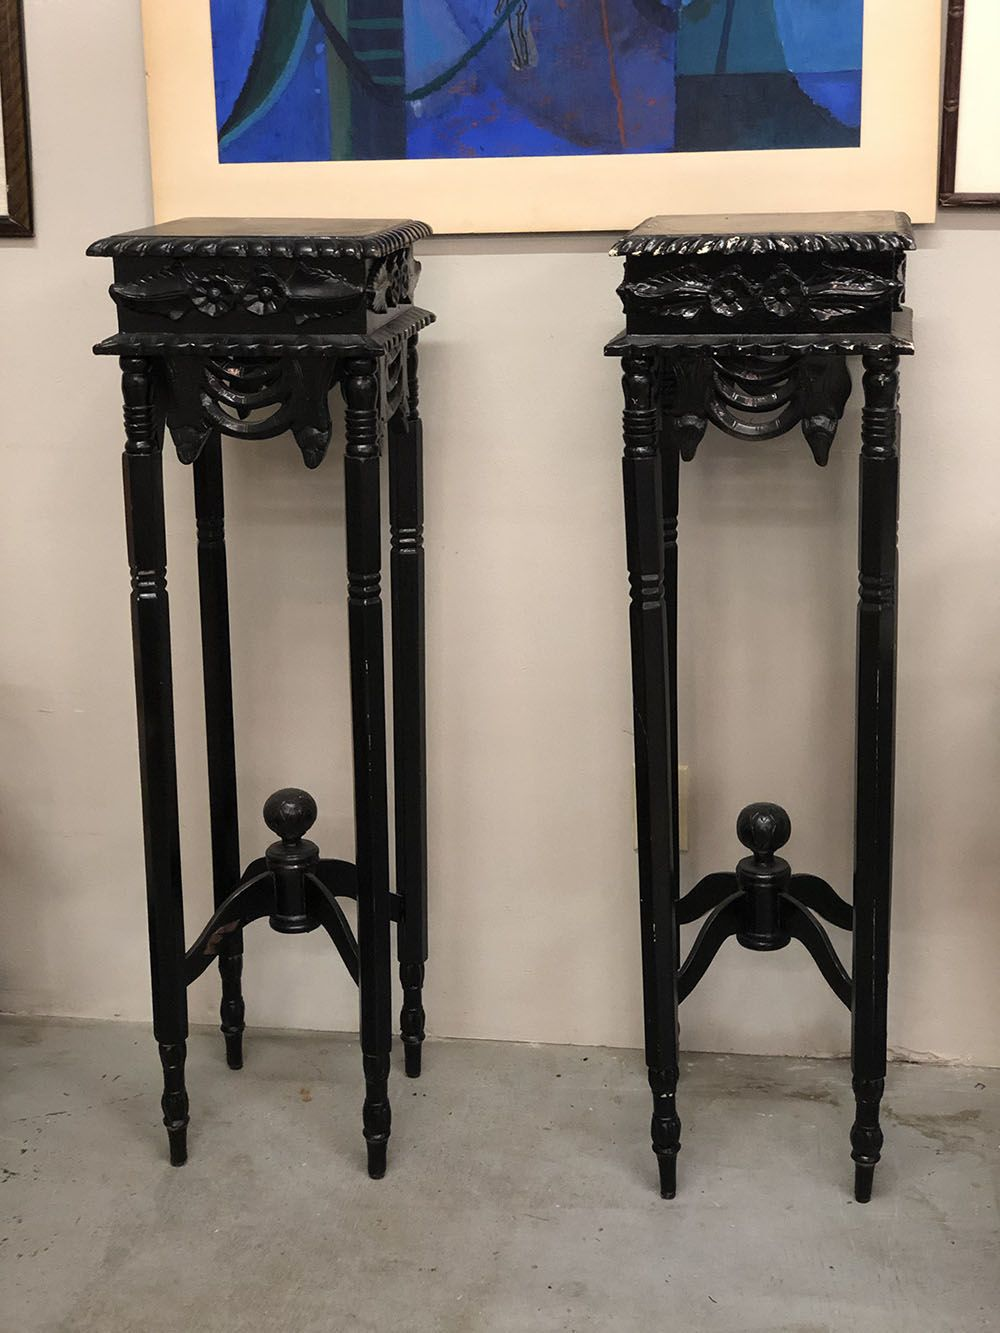 Pair Black Pedestal Style Plant Stands 12 Square X 42 High Country Garden Antiques 147 Parkhouse Dallas Tx 7 Antique Table High Country Gardens Antiques